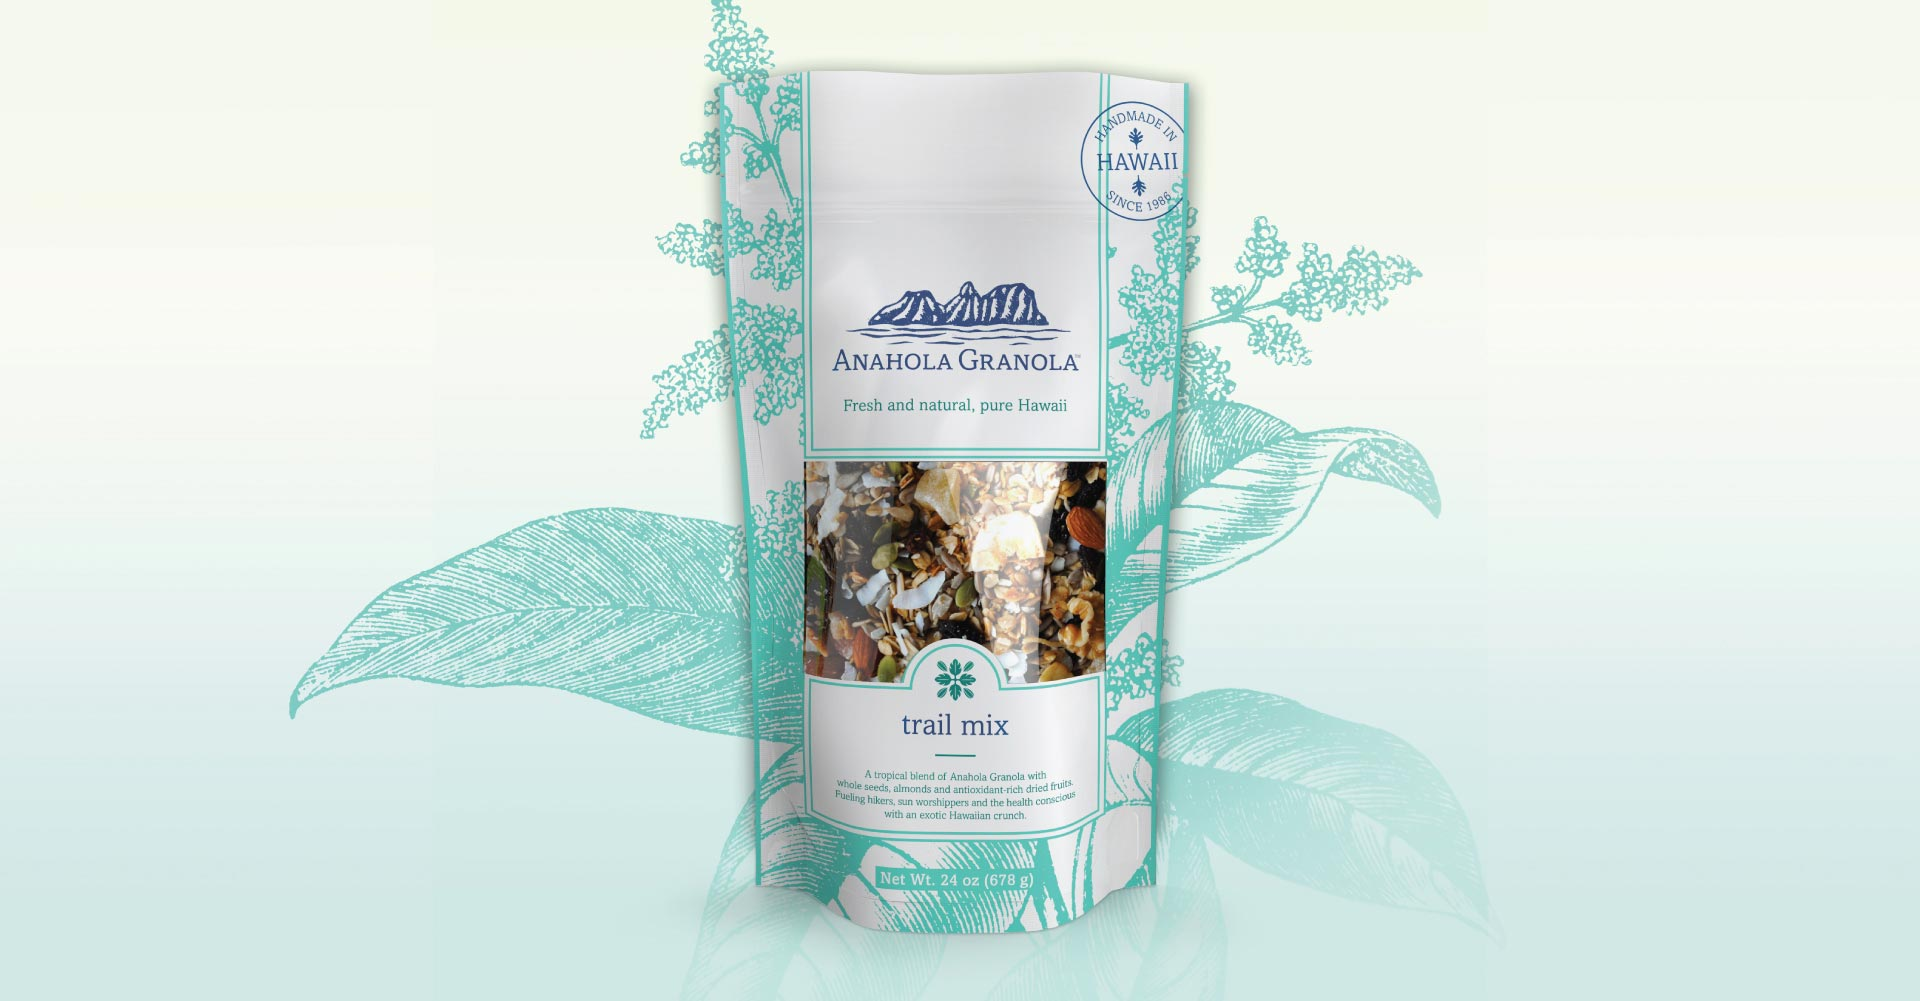 Creative_Retail_Packaging_Branding_Identity_Package_Design_AnaholaGranola_11.jpg